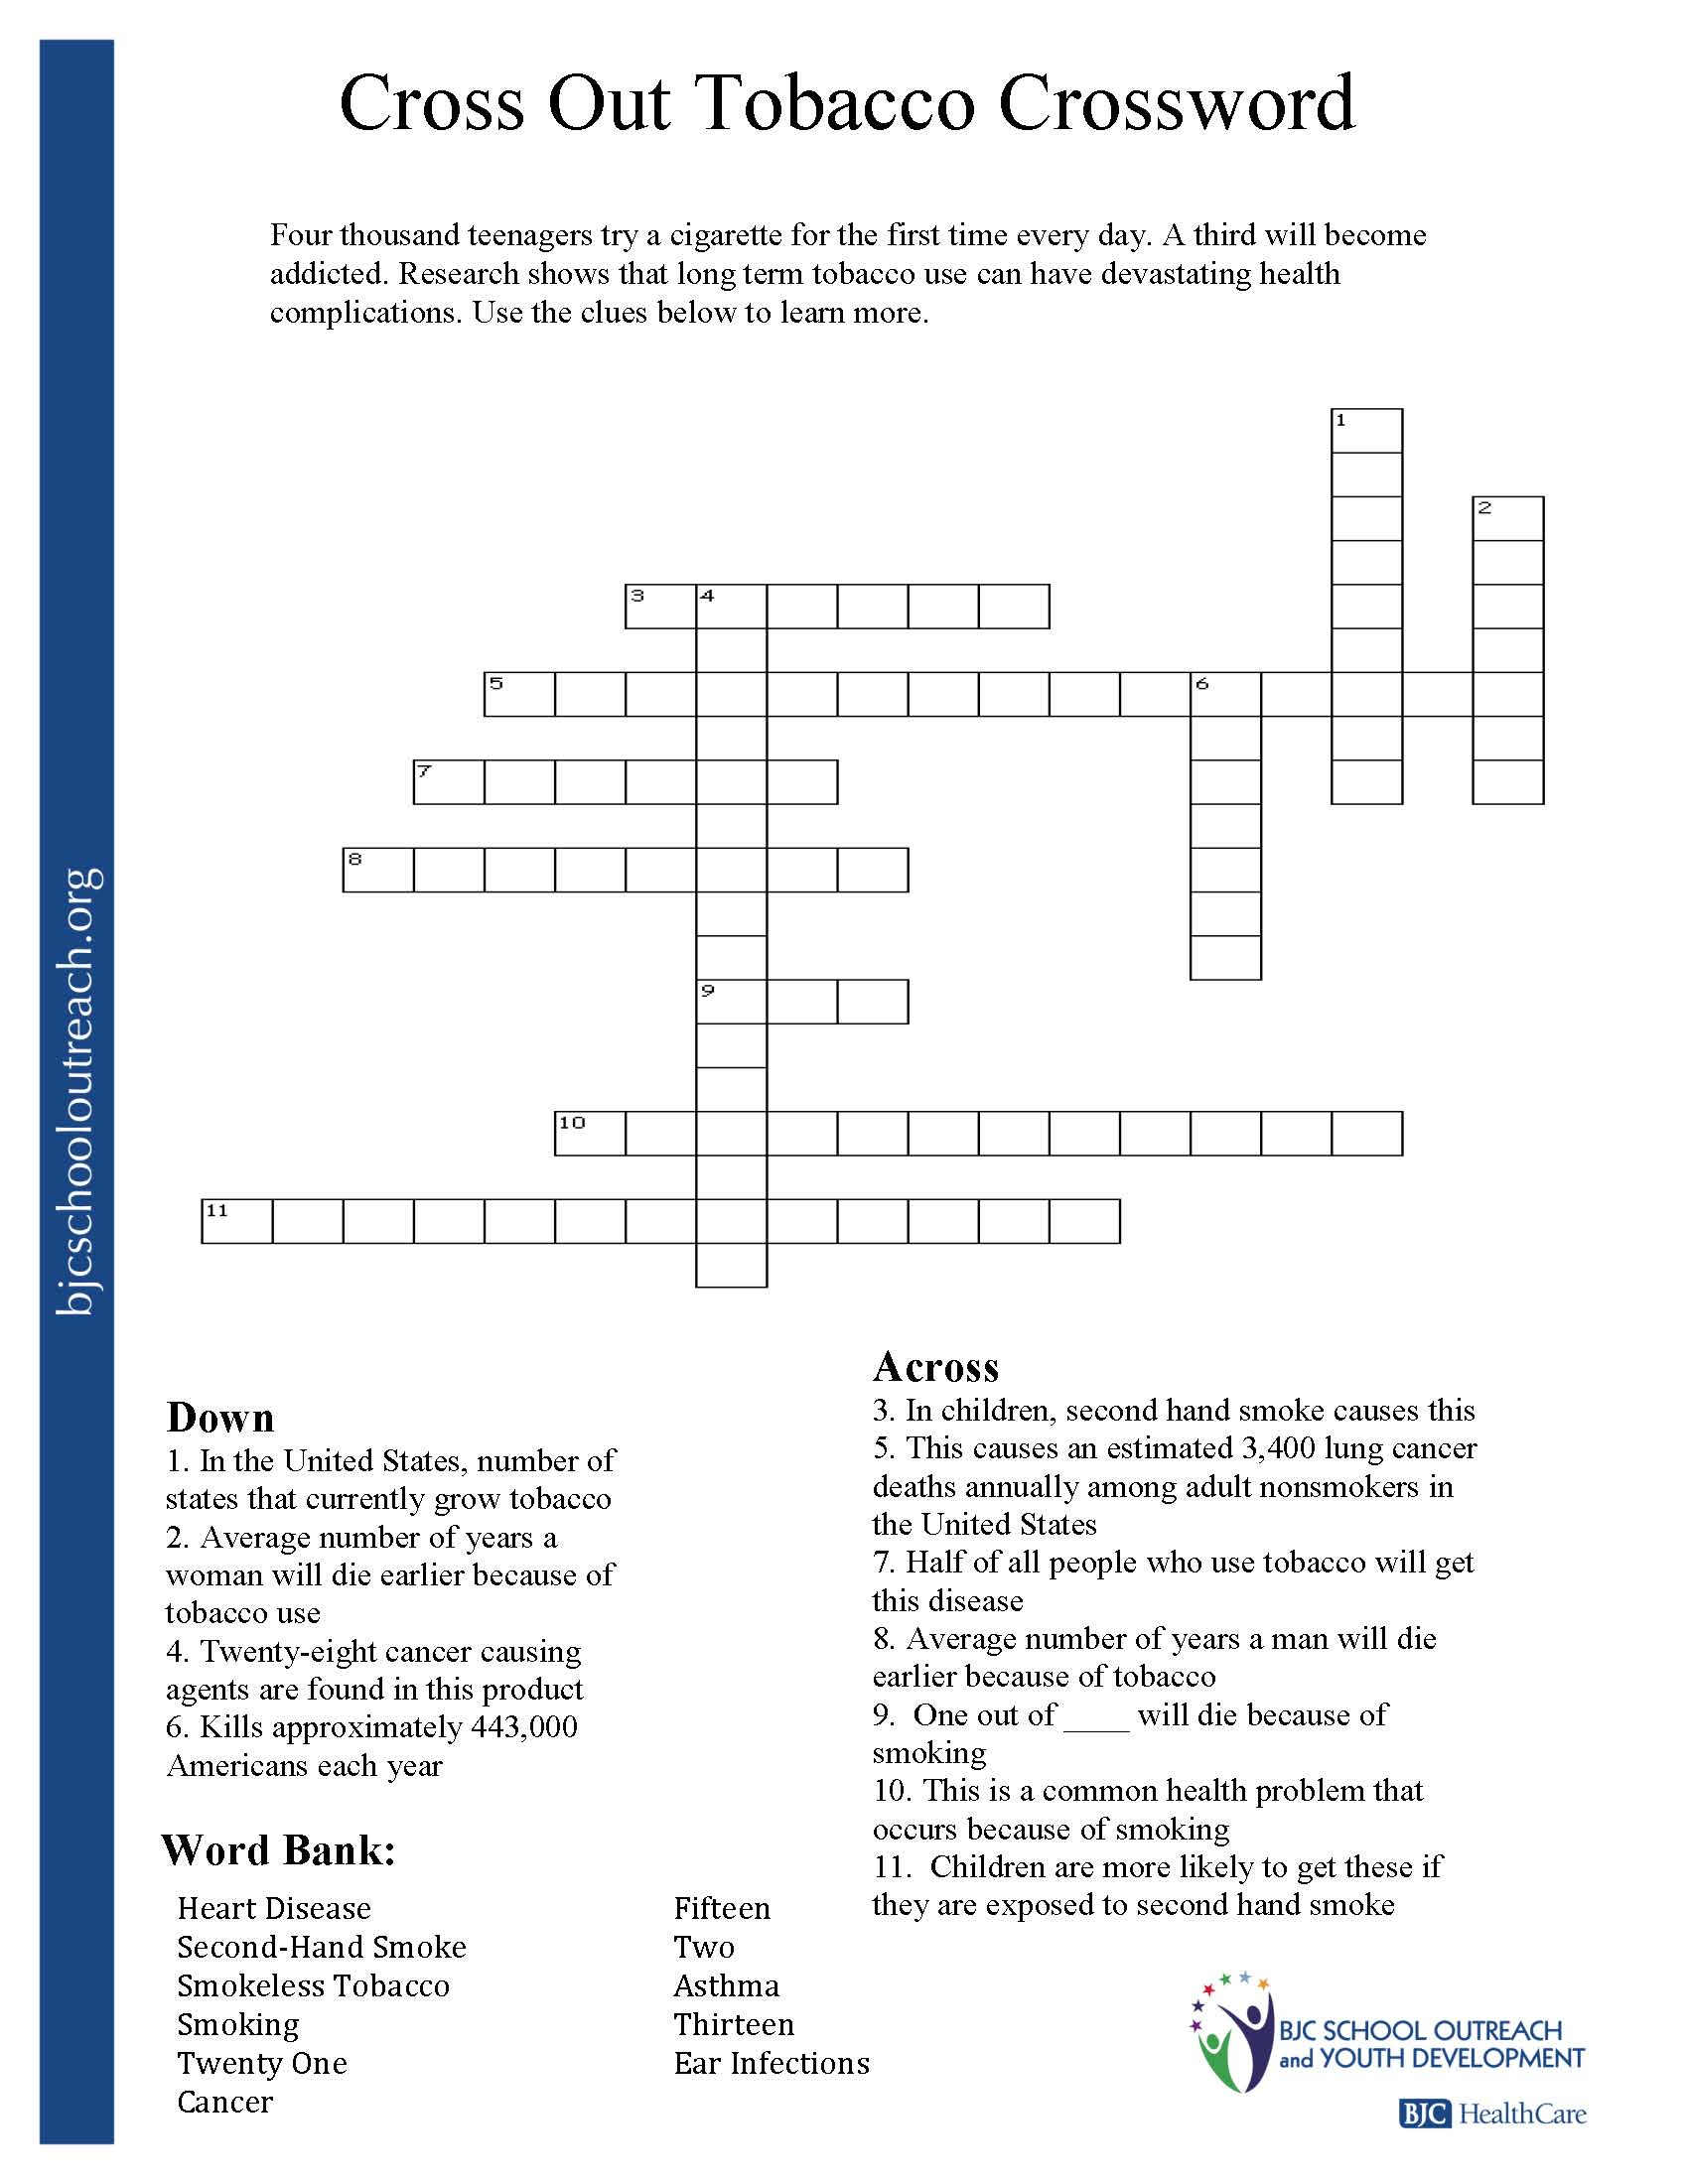 Printable Worksheets - Printable Crossword Puzzles With Word Bank